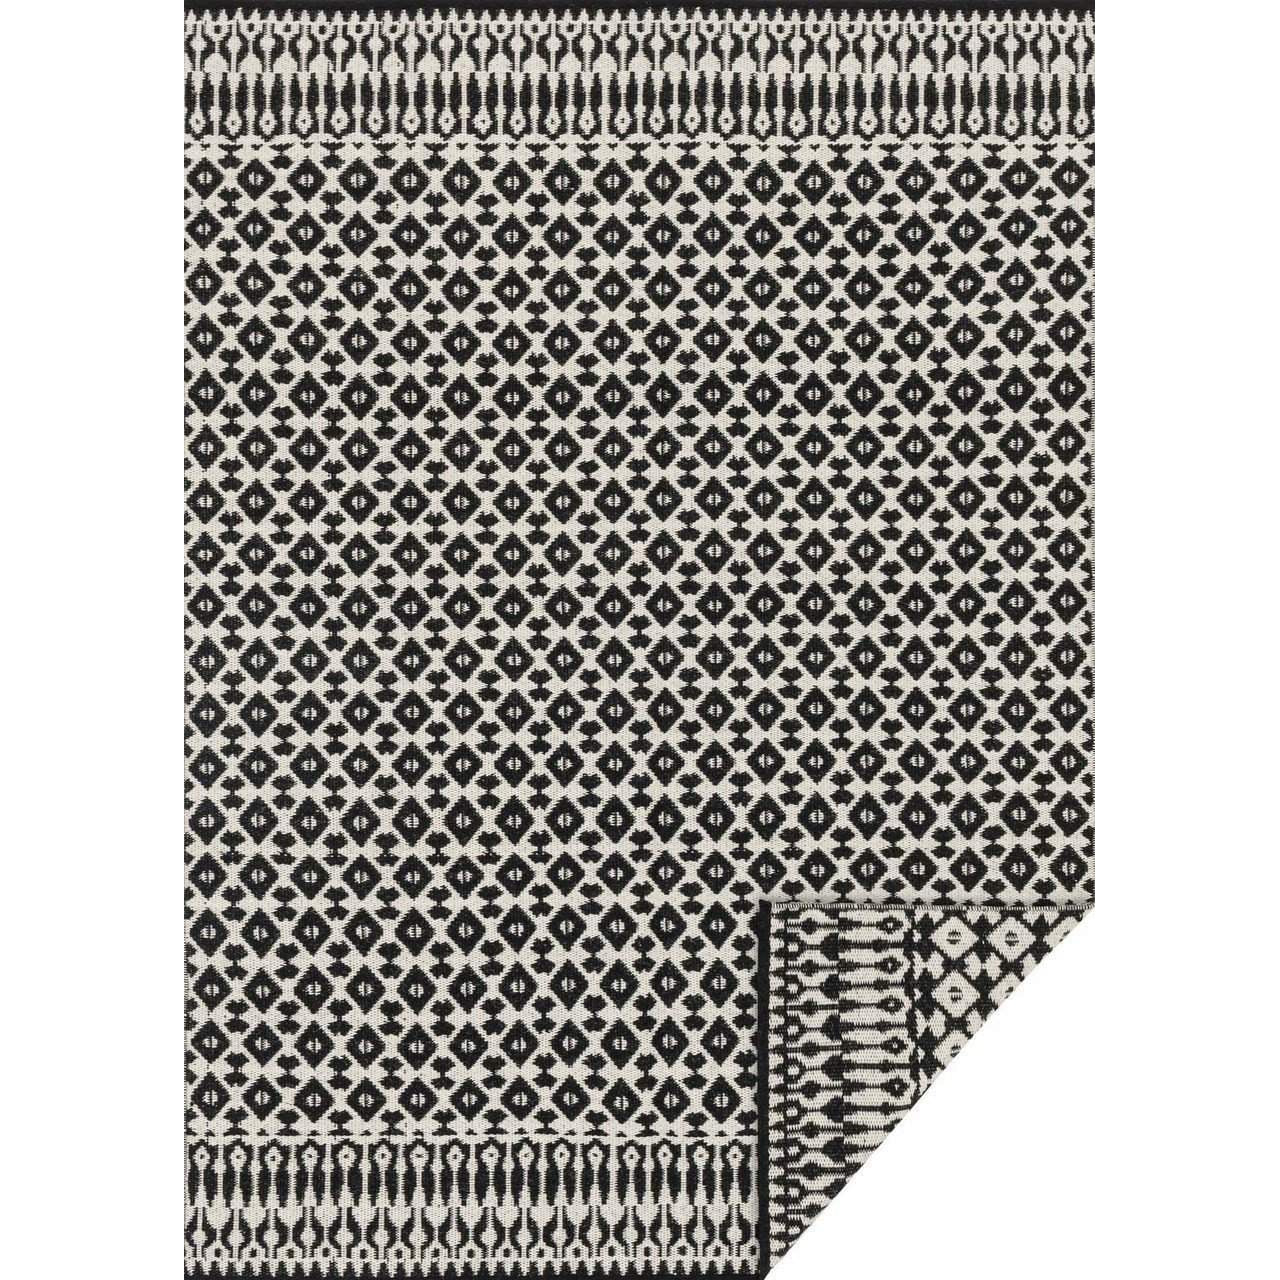 Joanna Gaines of Magnolia Home Emmie Kay Rug Collection - Ivory / Black